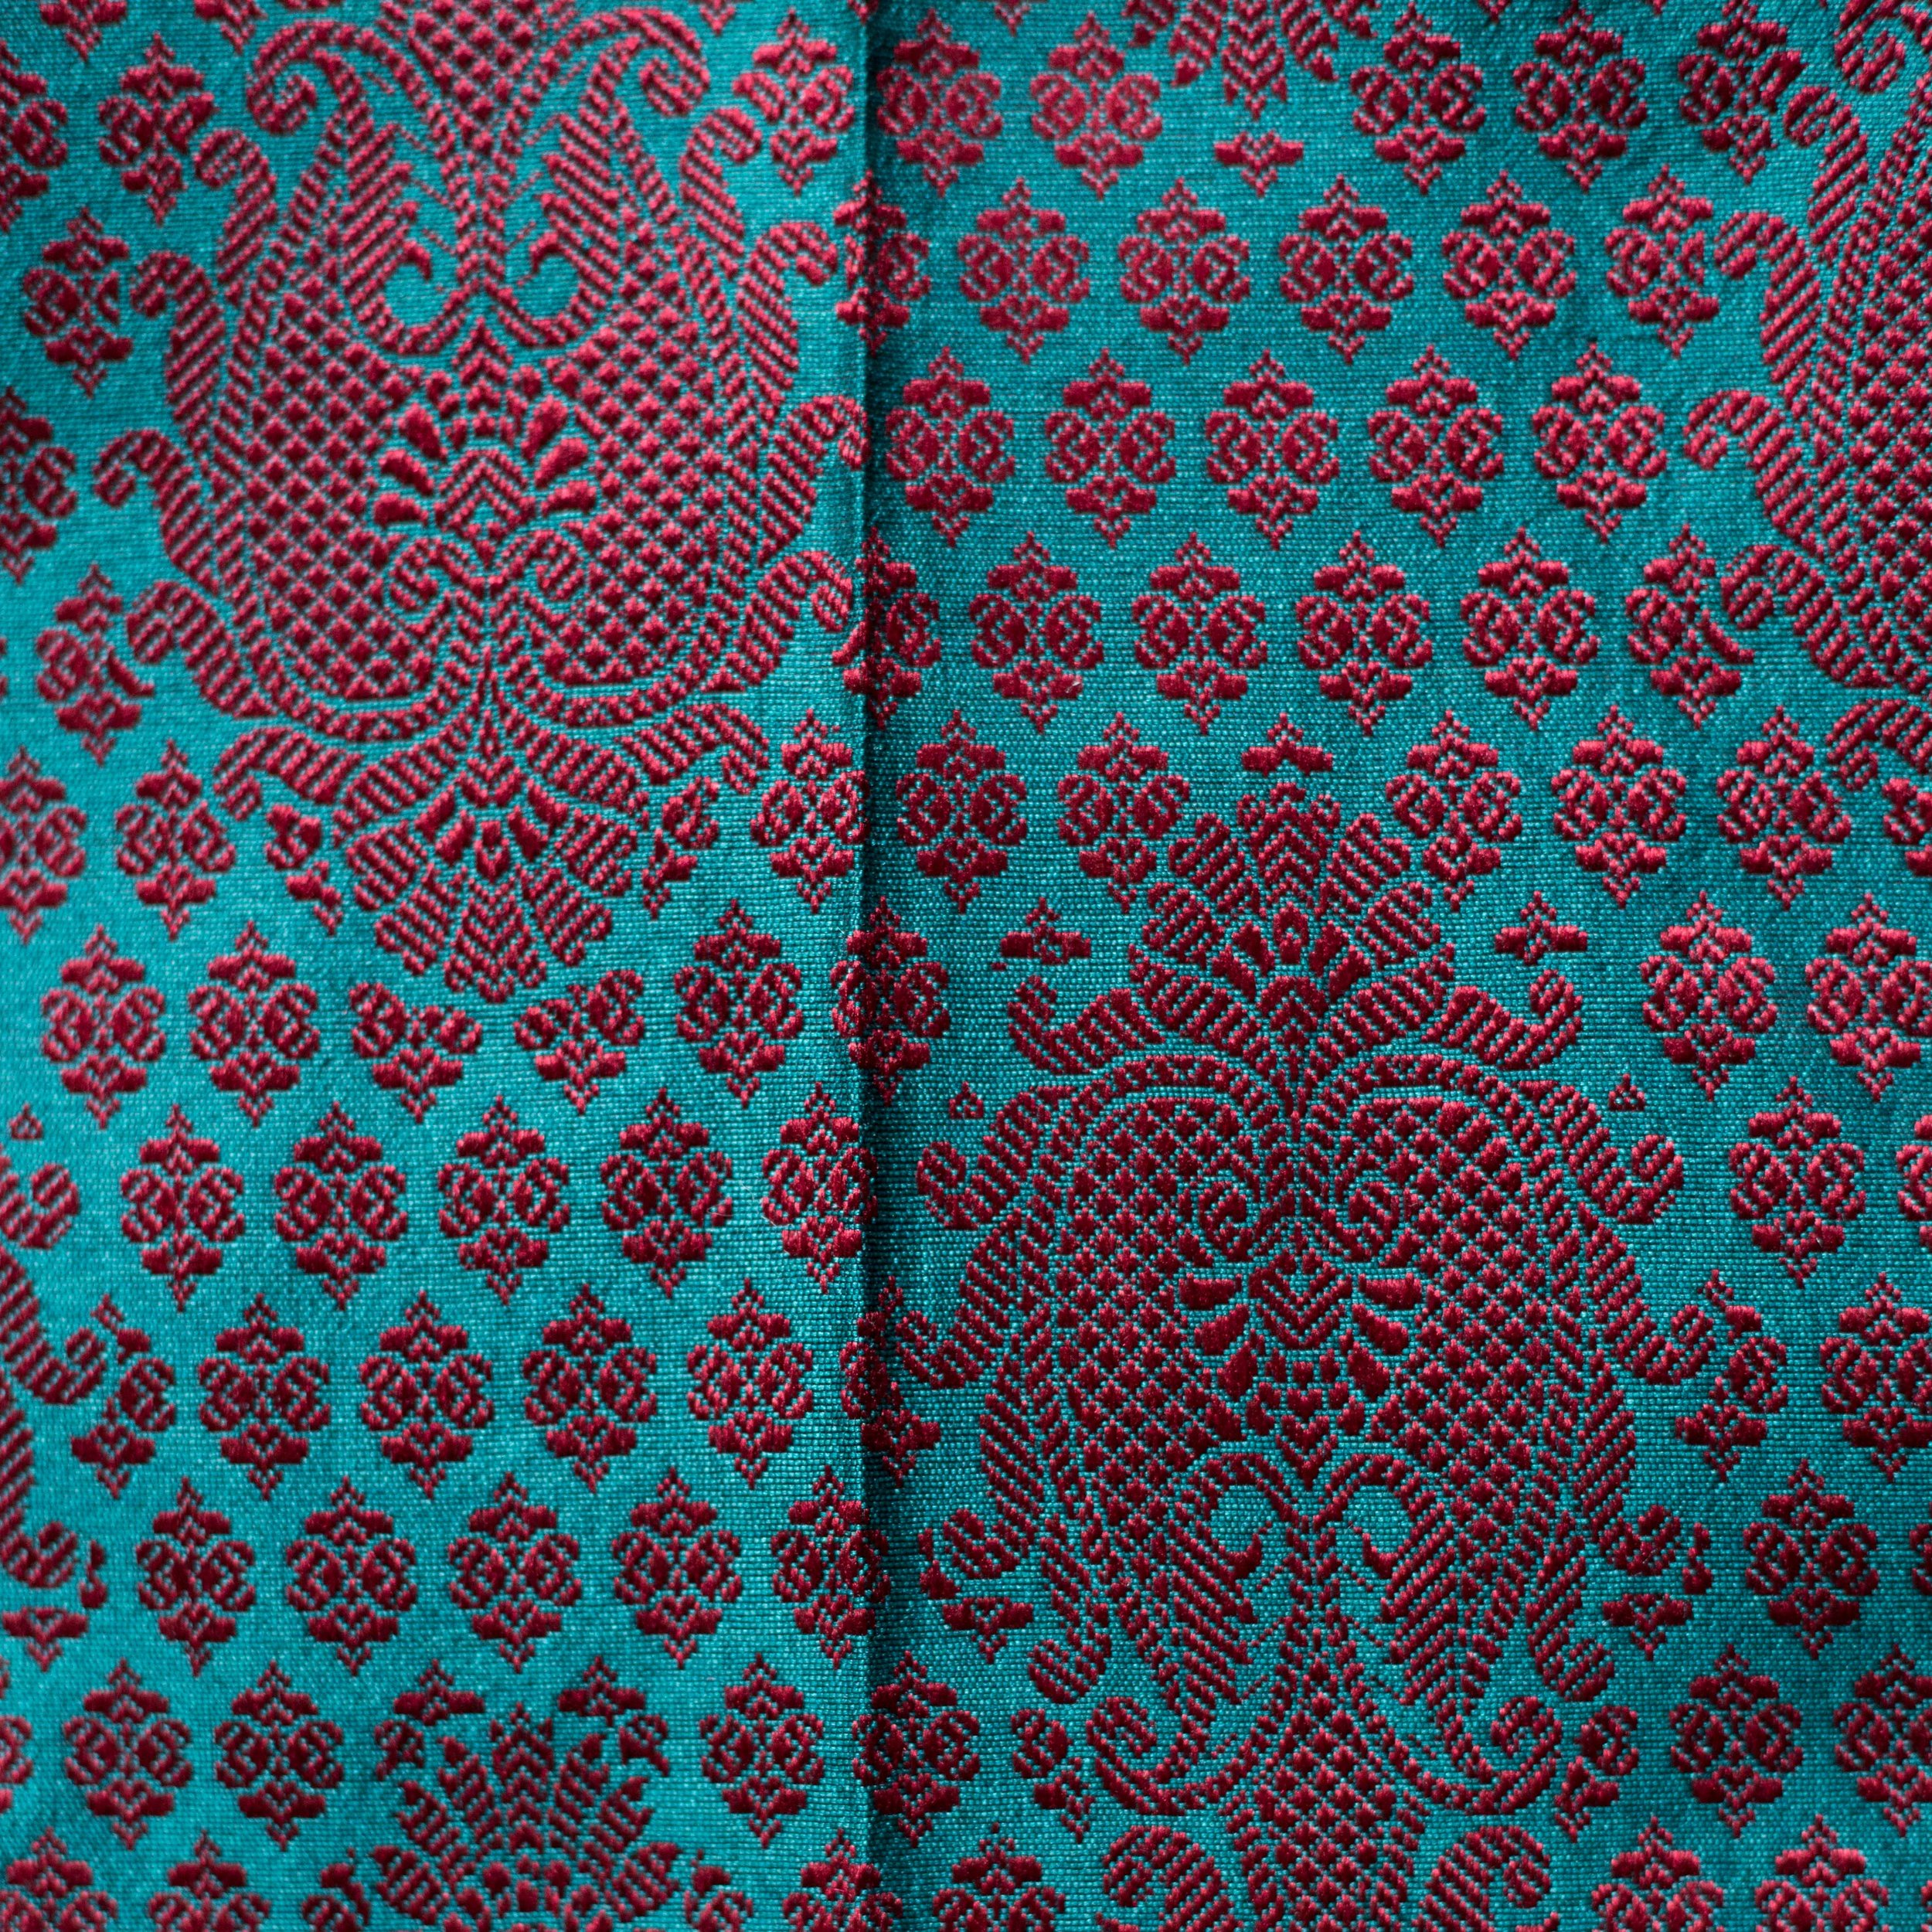 ALSAR_TURQUOISE_SILK_SHIRT_CHARZA